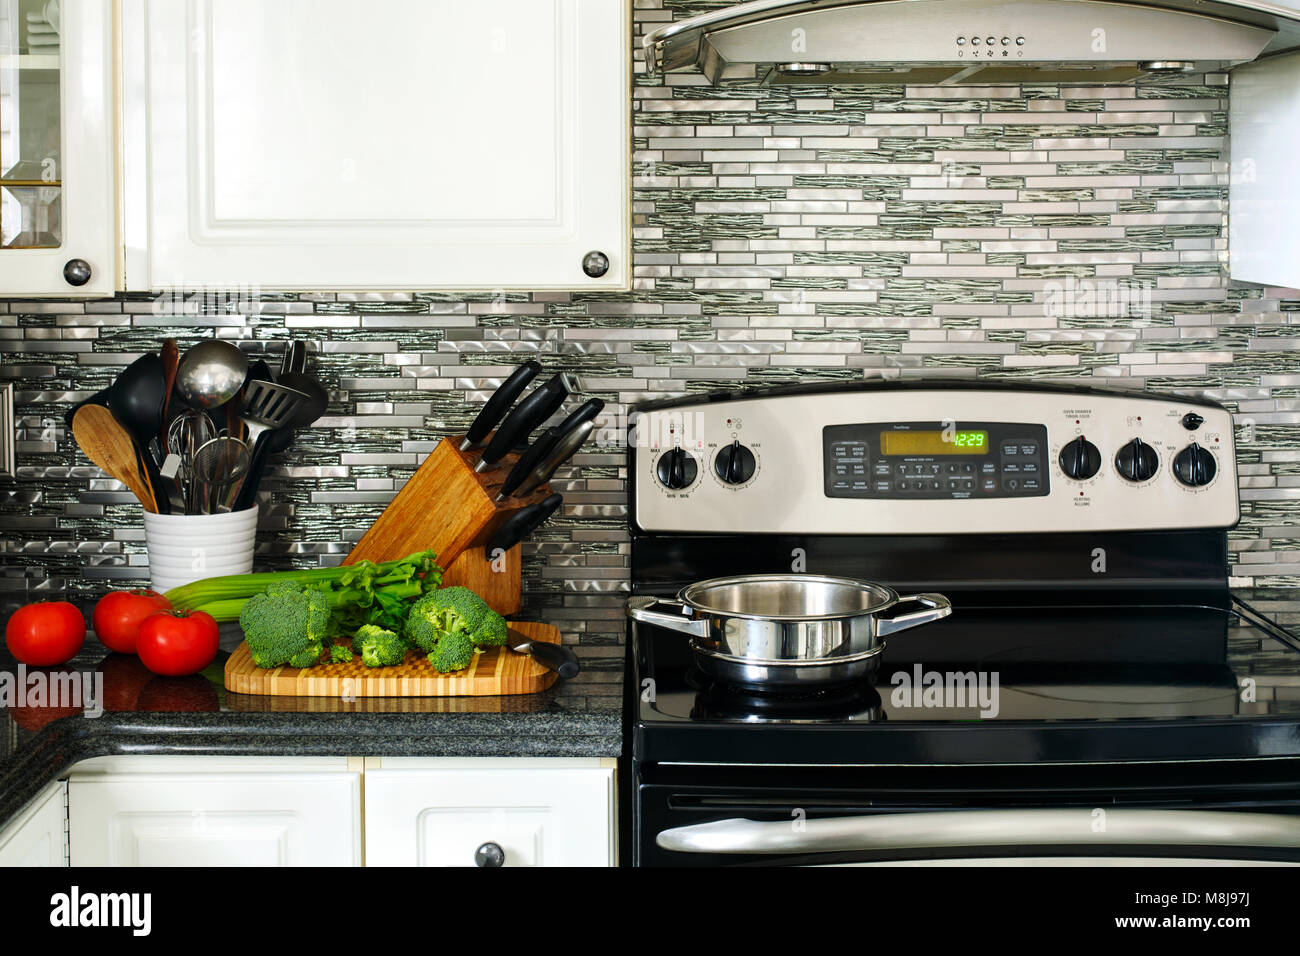 granite worktops stockfotos granite worktops bilder alamy. Black Bedroom Furniture Sets. Home Design Ideas